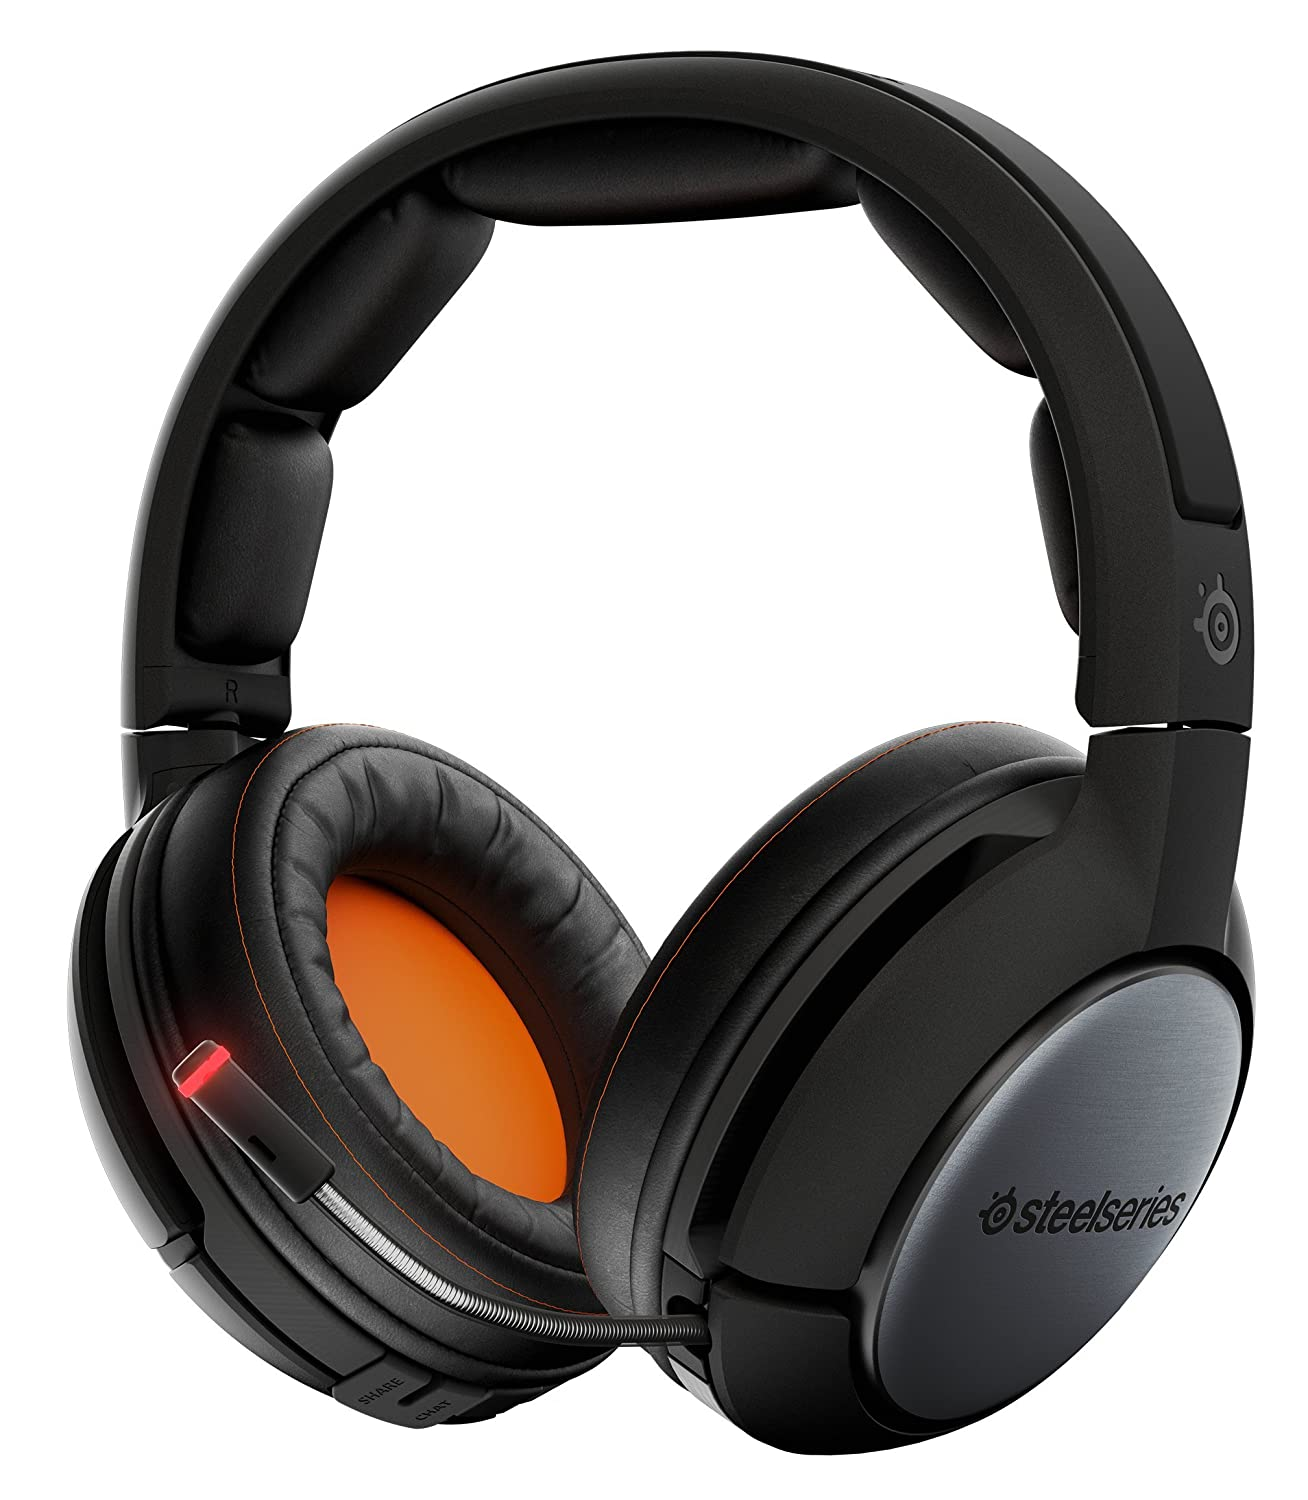 Amazon.com: SteelSeries Siberia 840 Lag-Free Wireless Gaming Headset ...